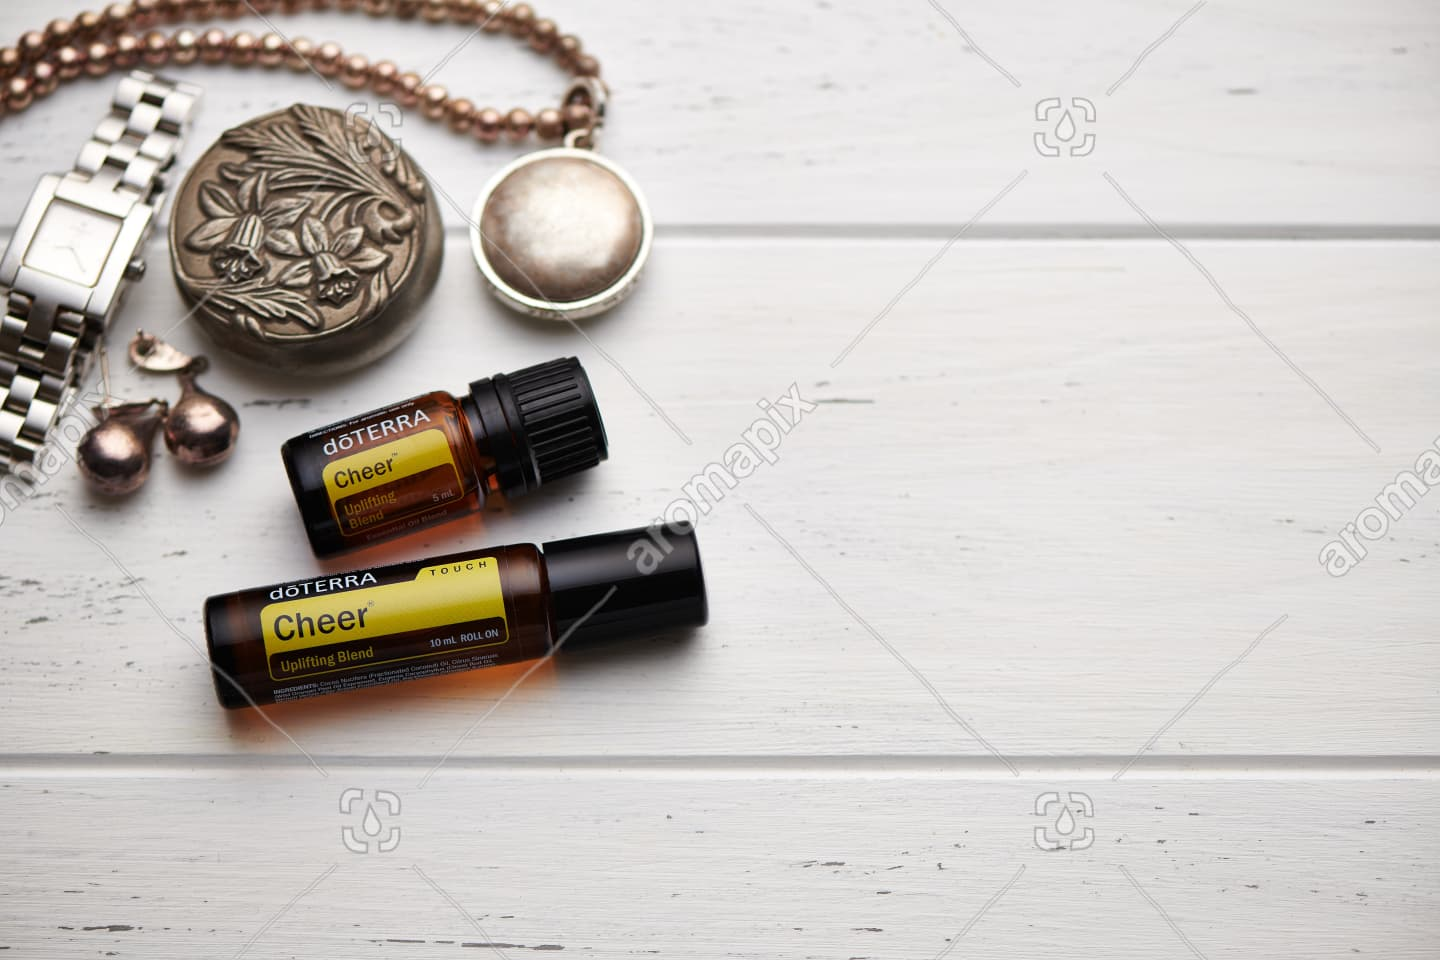 doTERRA Cheer and Cheer Touch on rustic background